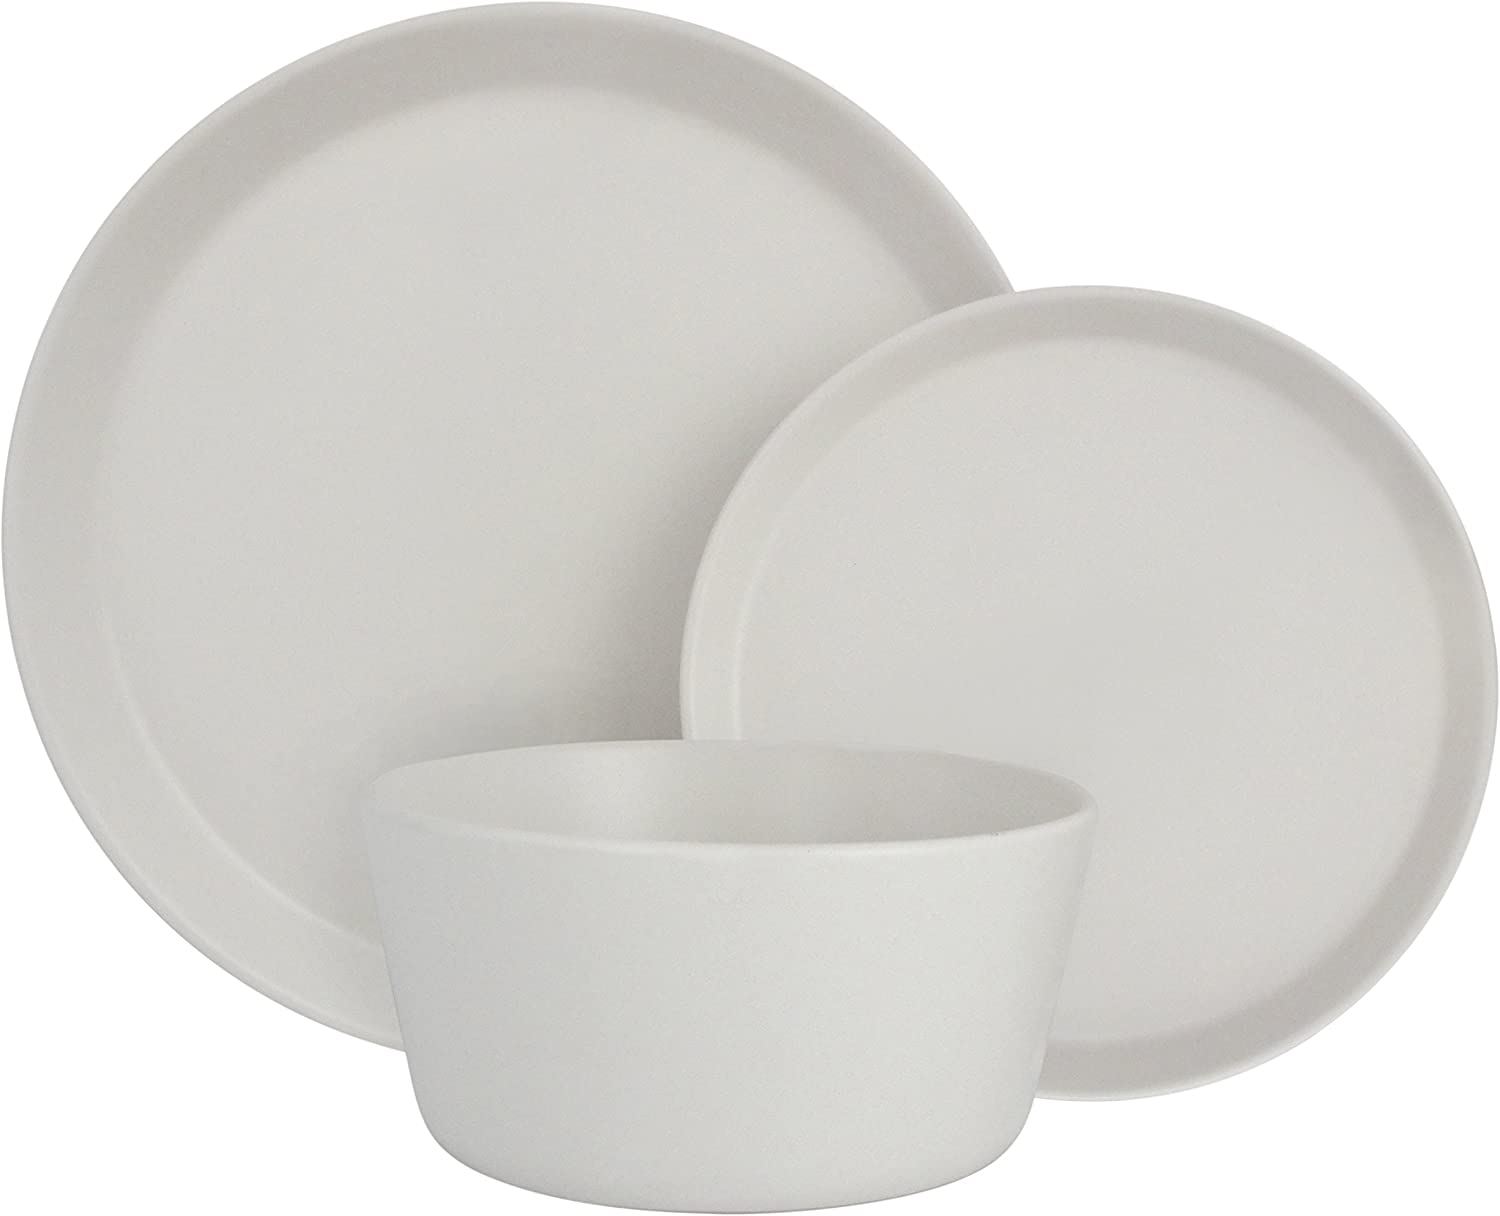 Melange Stoneware 18-Piece Dinnerware Set (Moderno White)   Service for 6  Microwave, Dishwasher & Oven Safe   Dinner Plate, Salad Plate & Soup Bowl (6 Each)